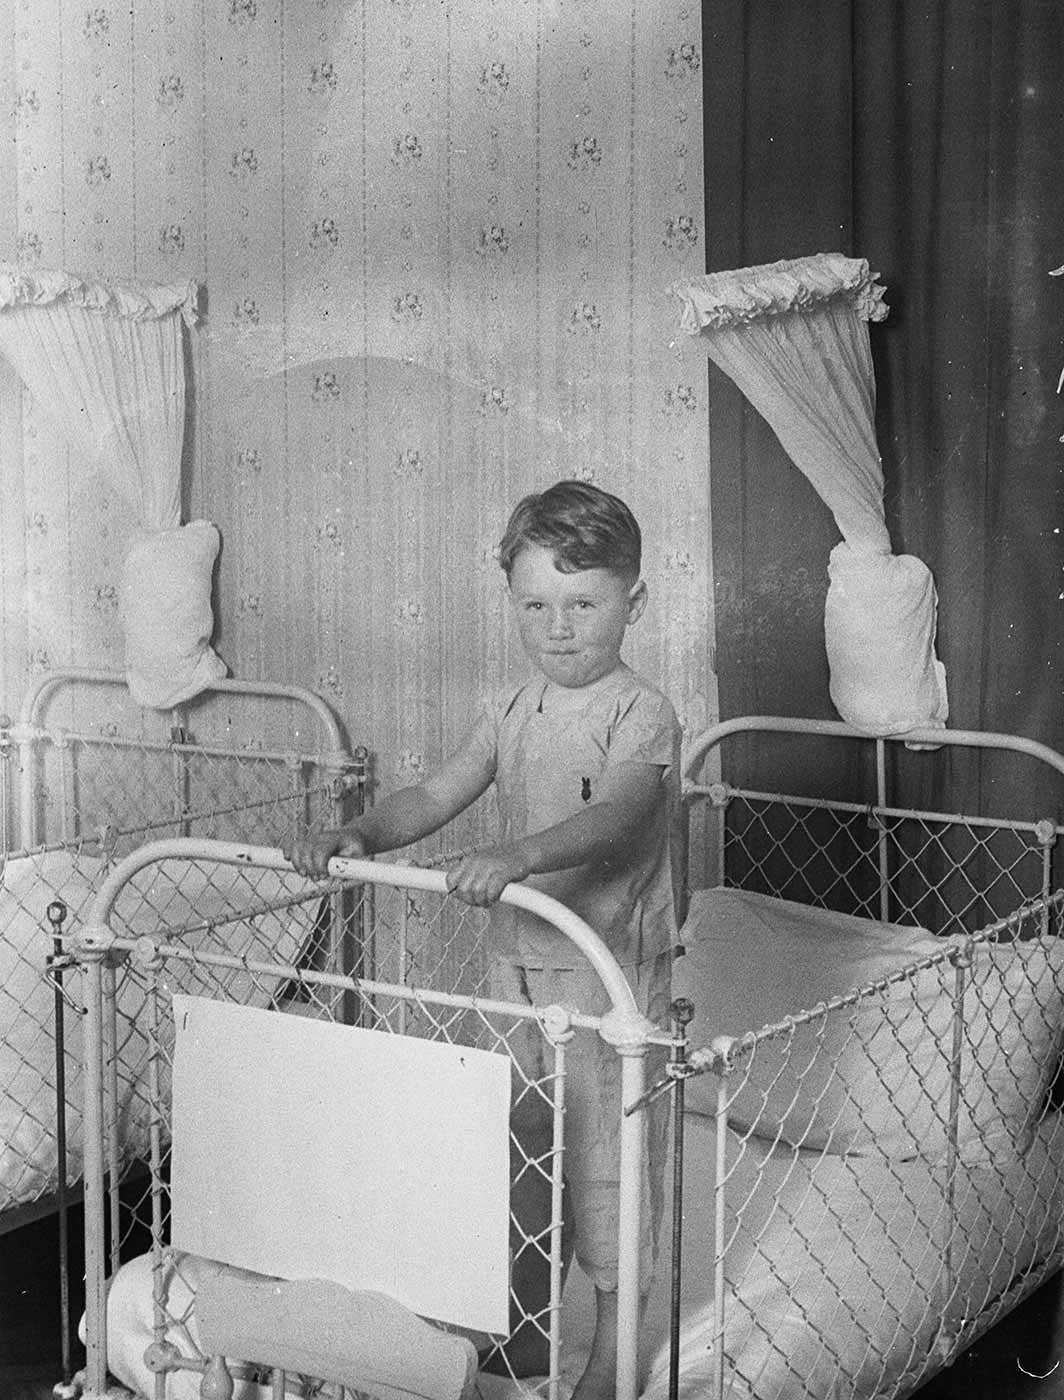 Black and white image showing a small boy standing in a white metal and wire cot. Another cot stands to the left, and in between, on the wall above, white curtains have been tied into a knot. - click to view larger image